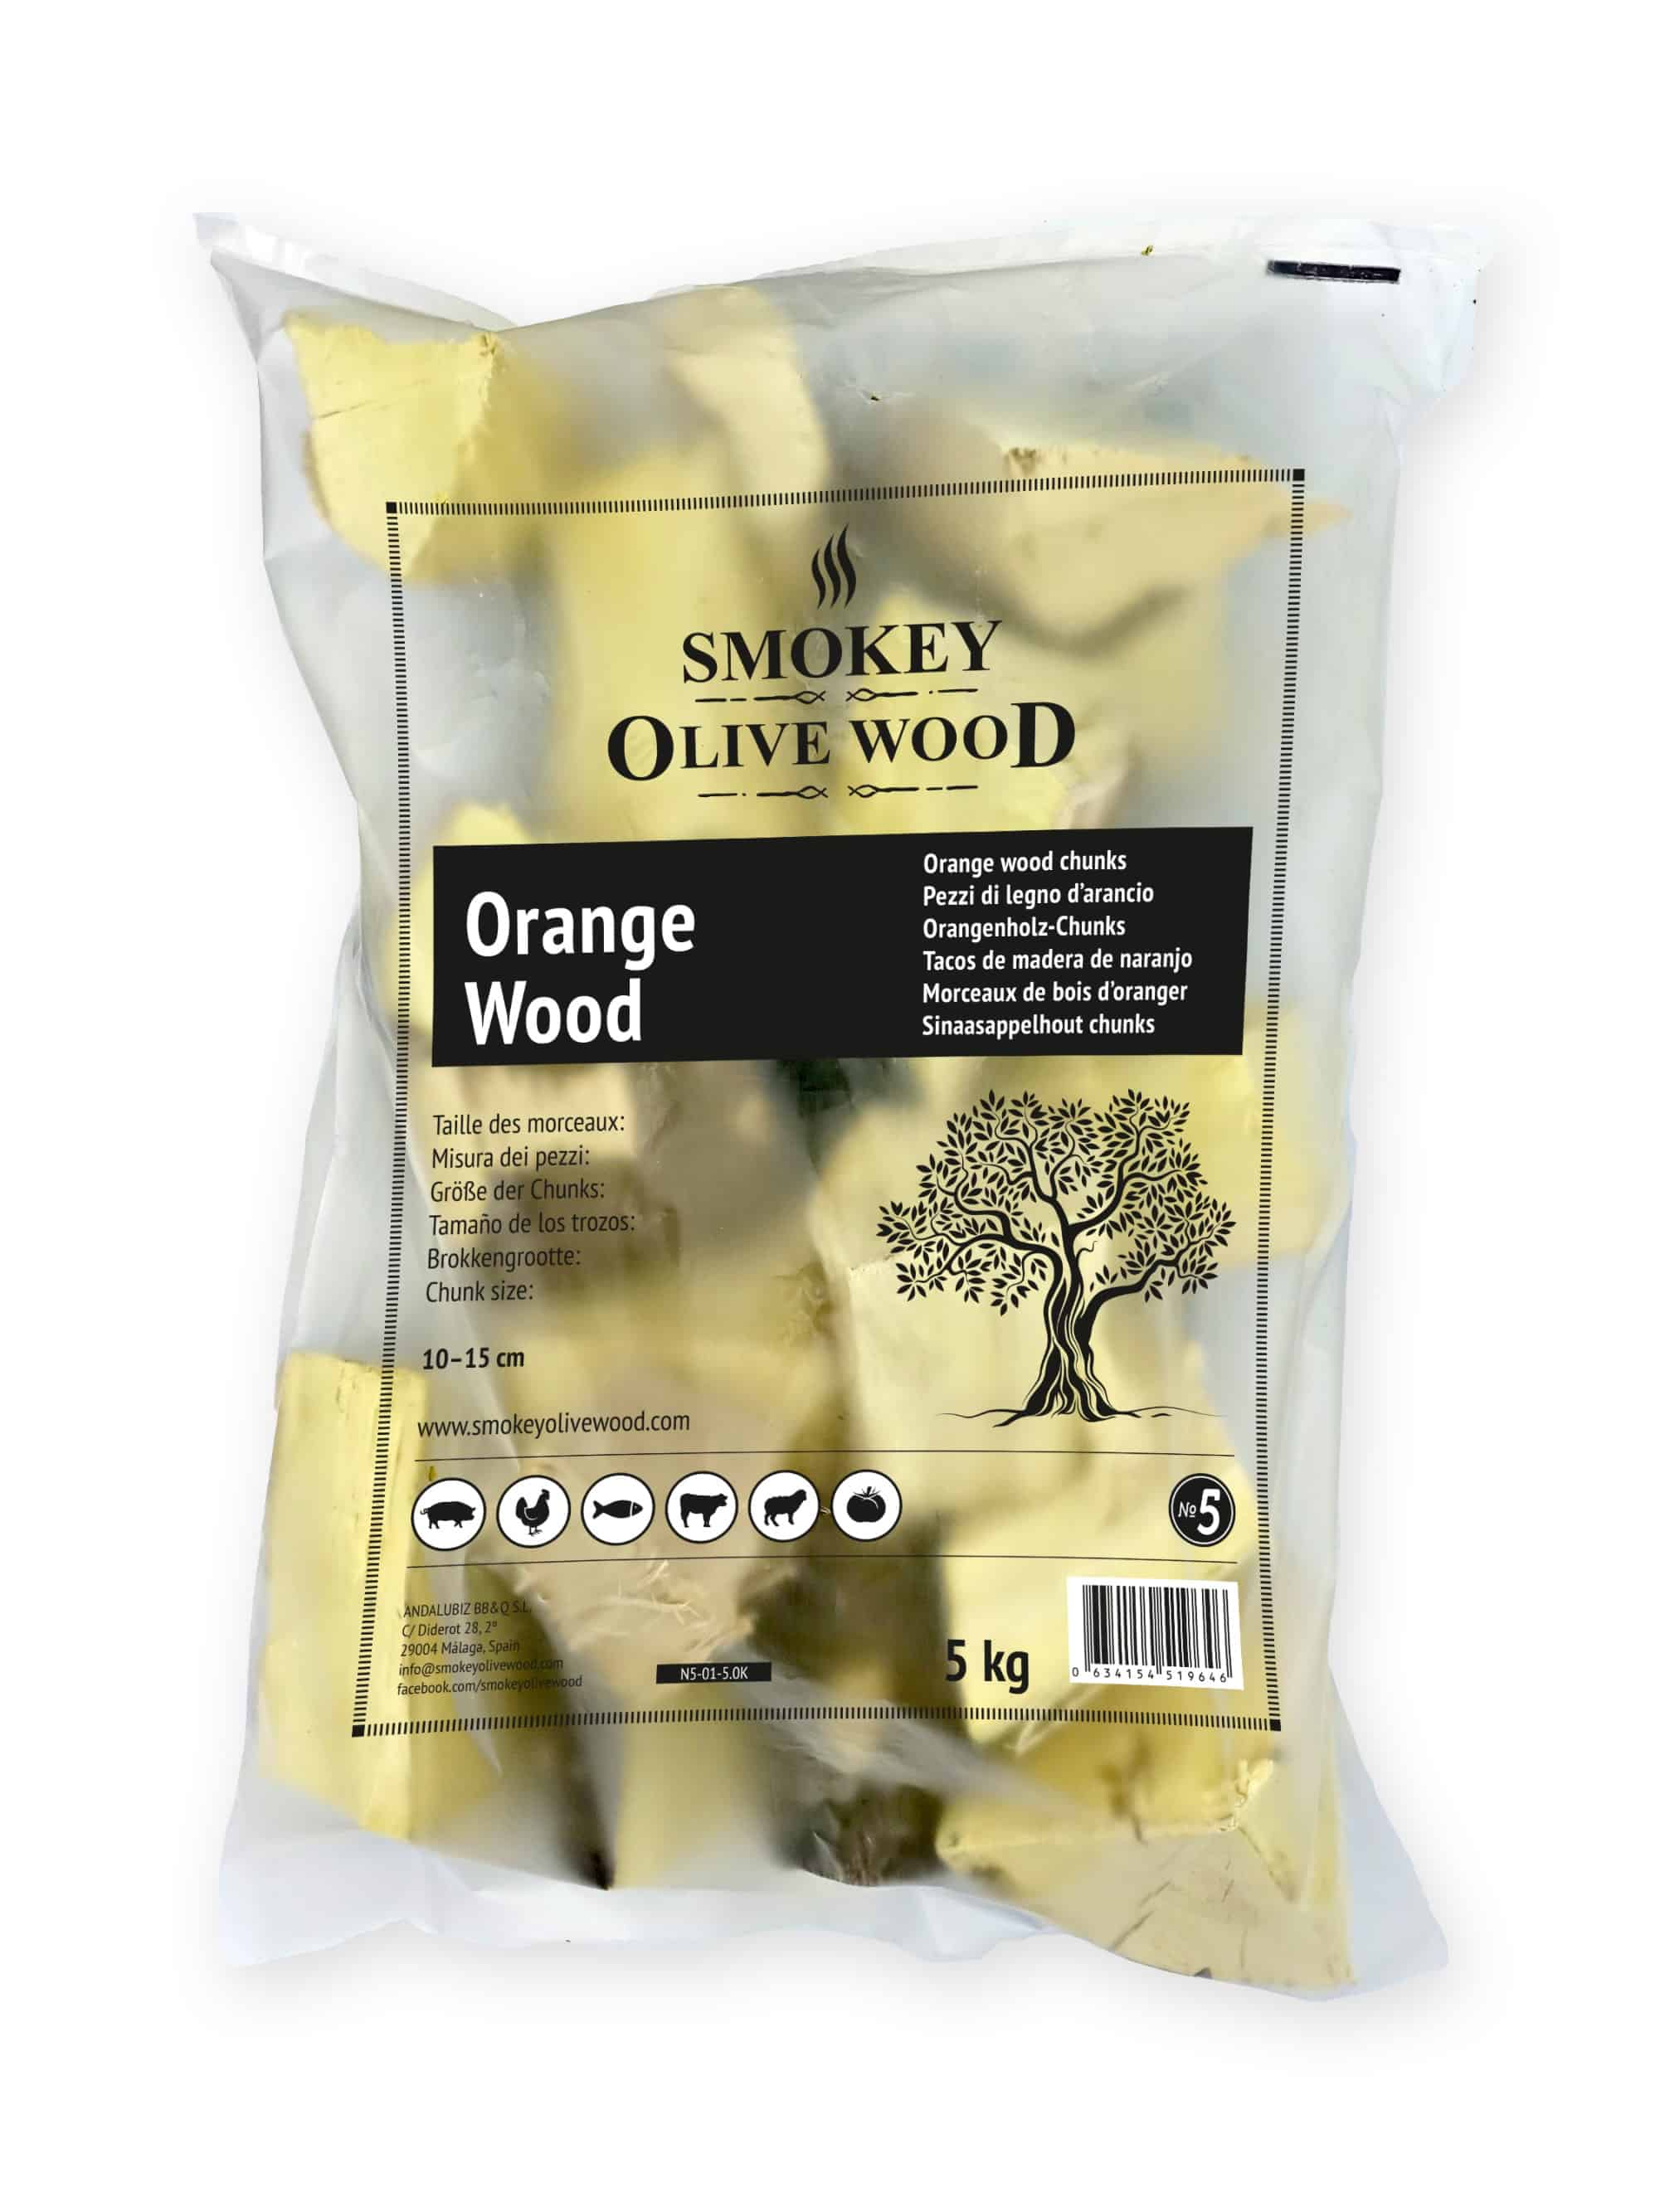 SOW Orange Wood Chunks Nº5